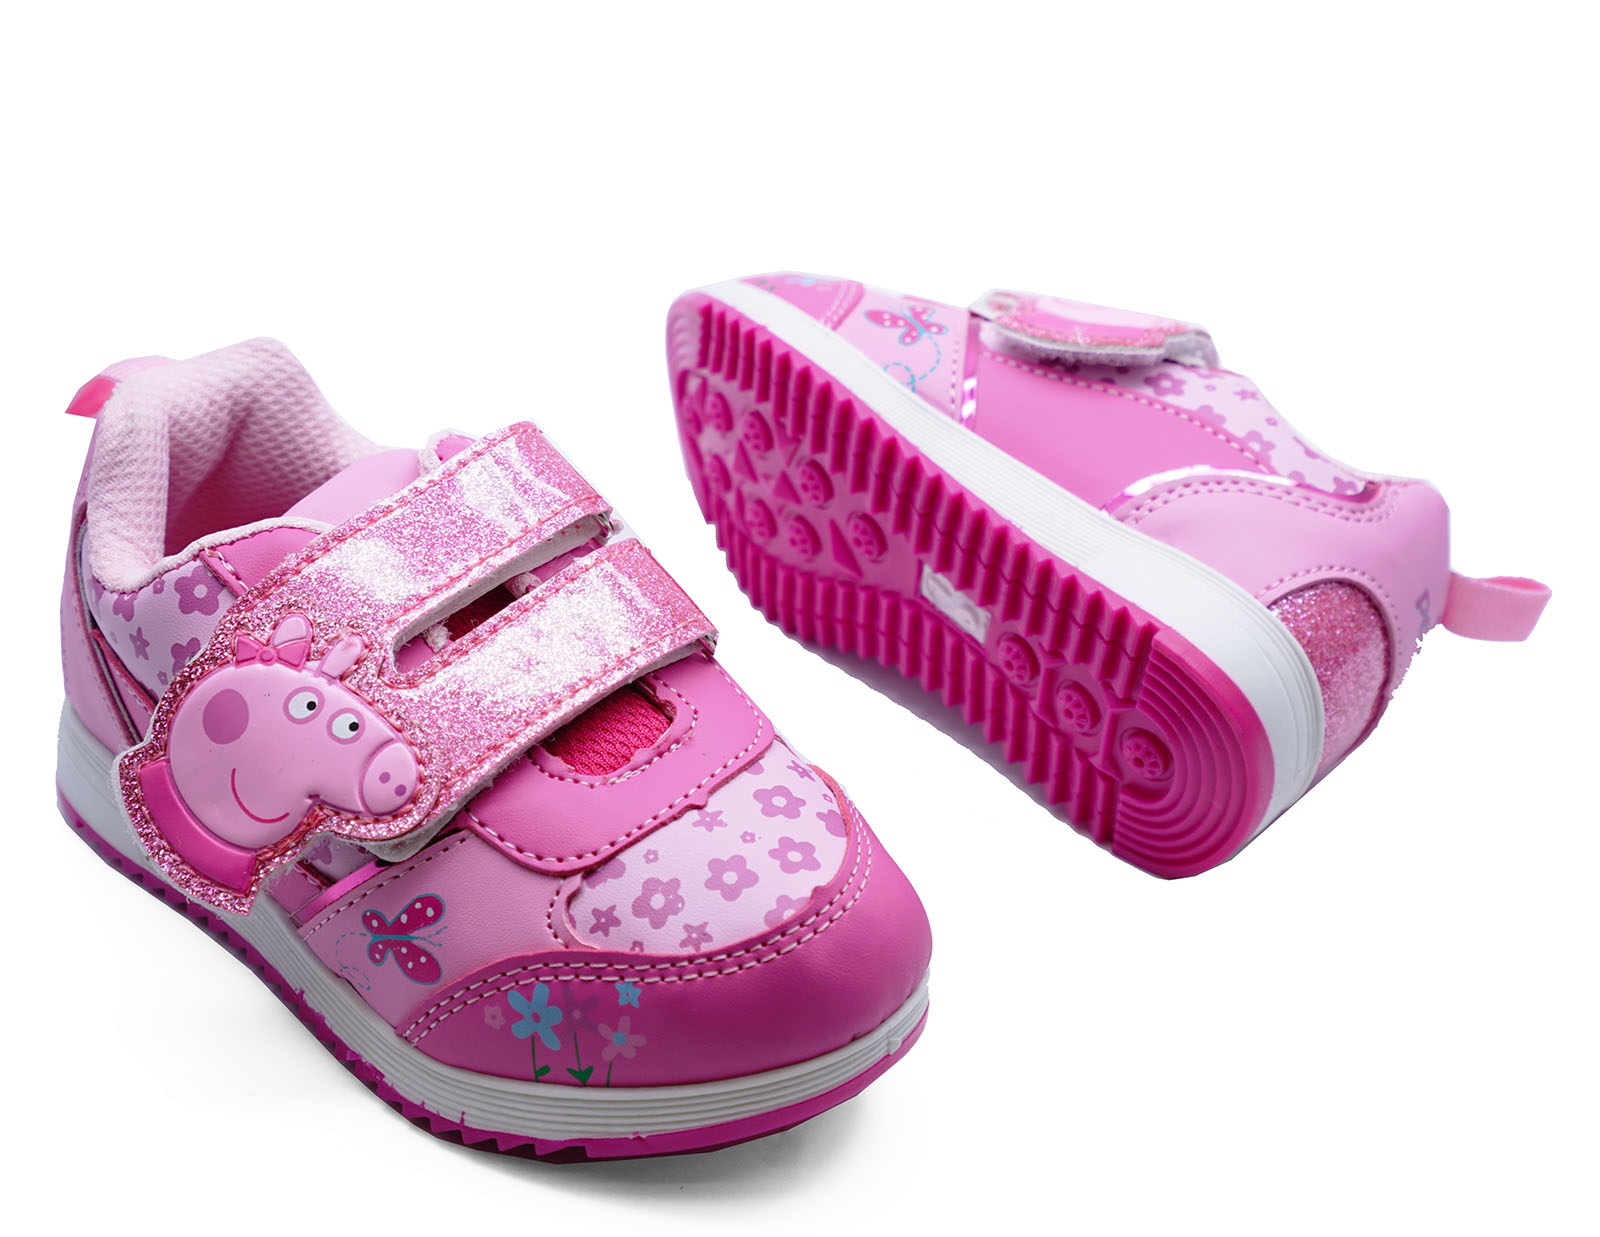 GIRLS KIDS CHILDRENS PINK PEPPA PIG TRAINERS CUTE PLIMSOLL PUMPS SHOES UK 5-10